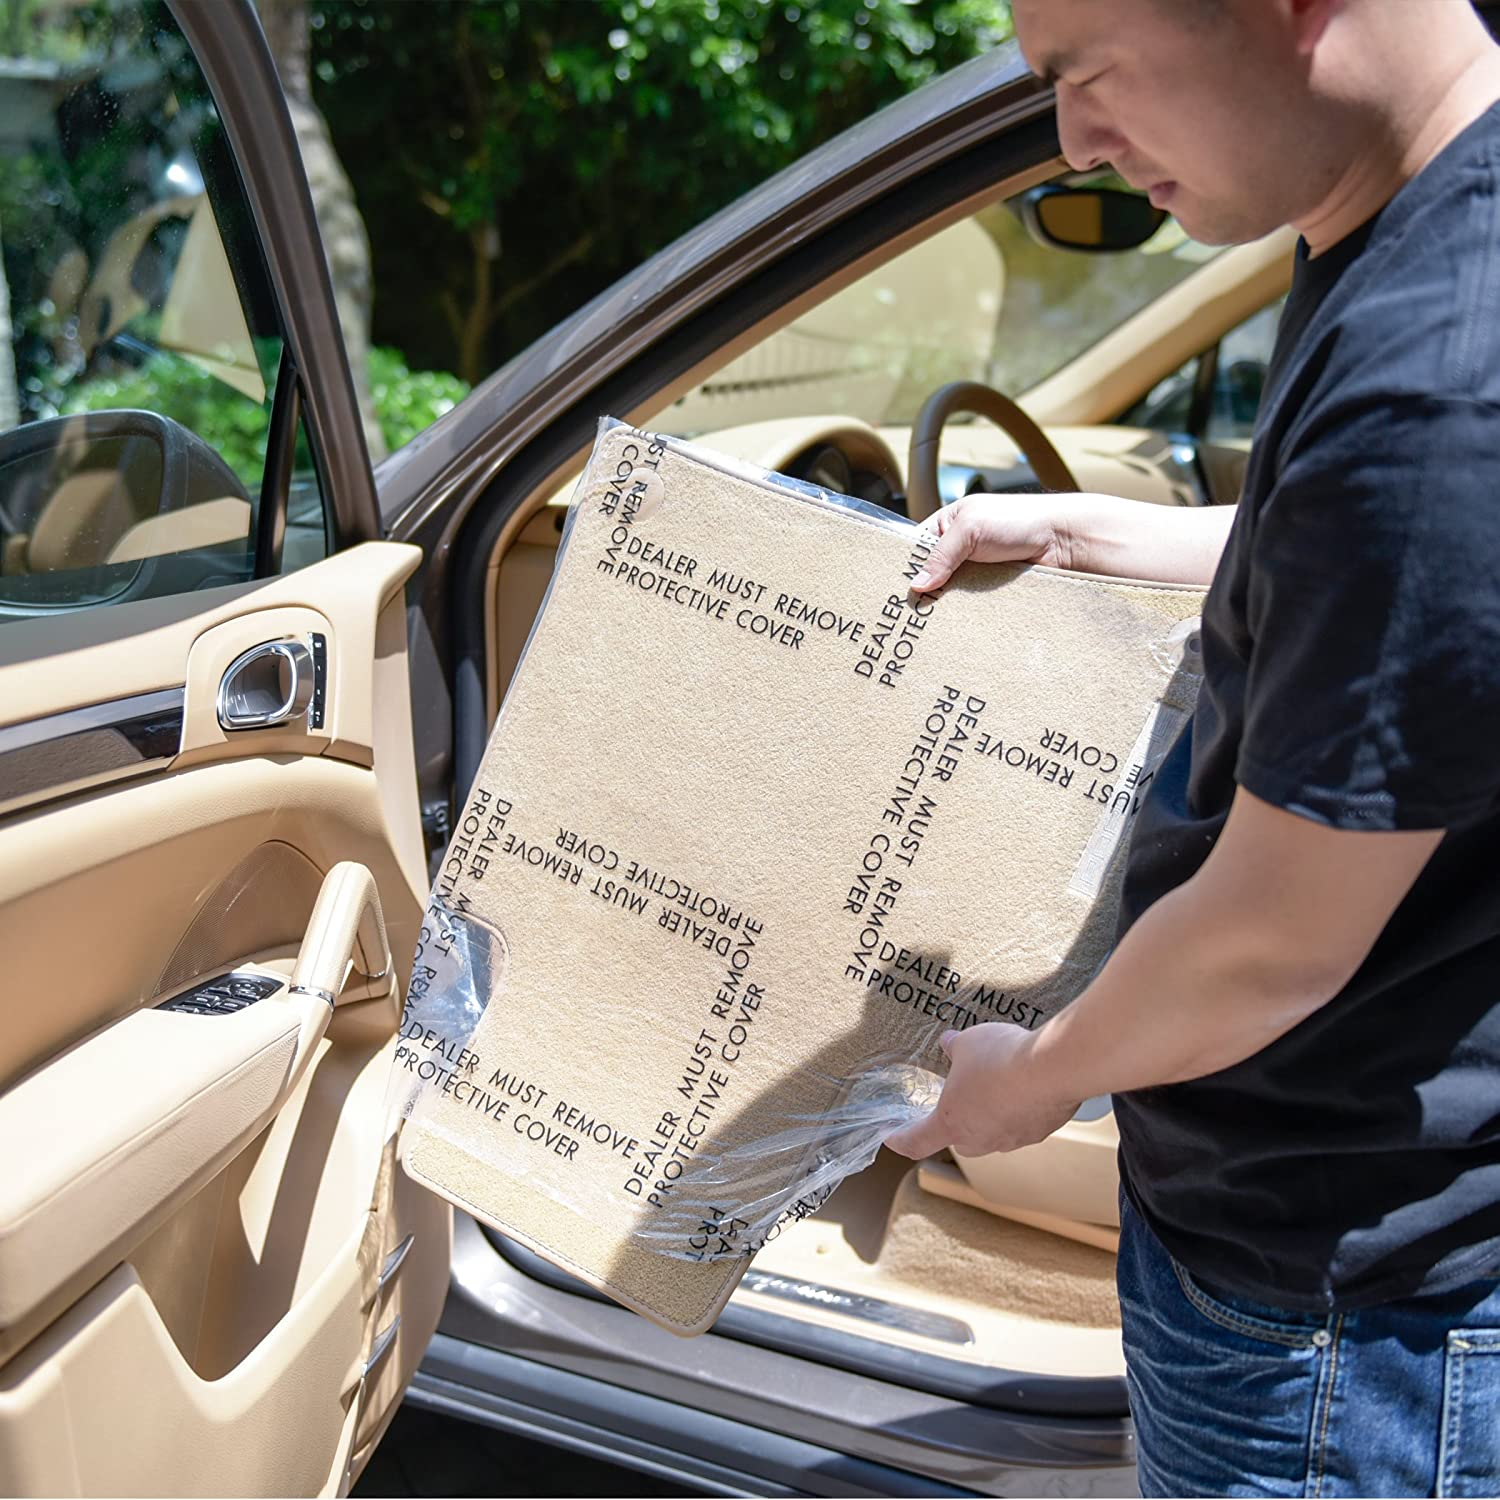 The Best Auto Adhesive Floor Mats In 2020: Reviews & Buying Guide 2